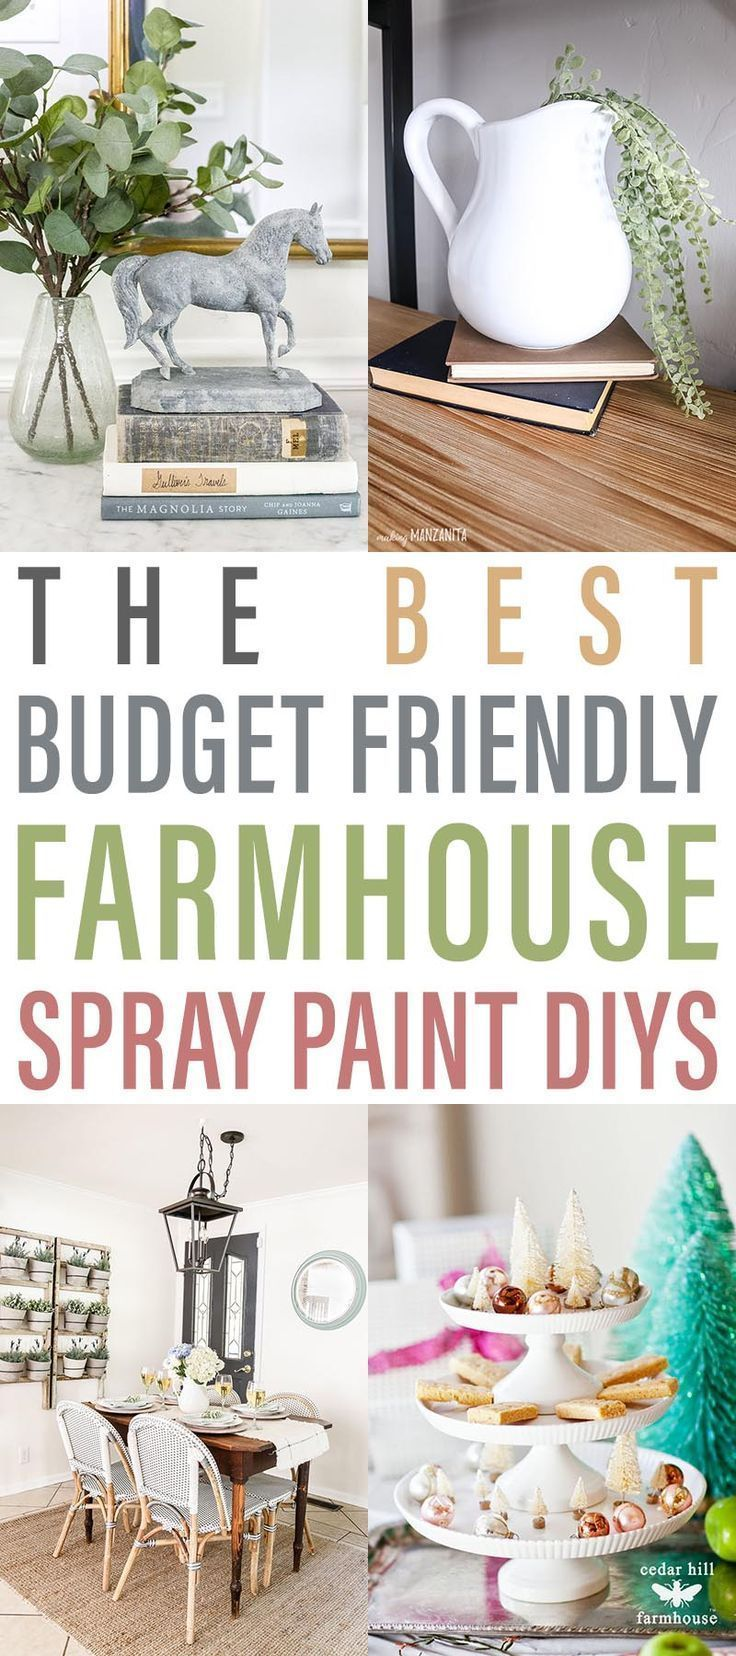 The Best Budget Friendly Farmhouse Spray Paint DIYS  If you want to see how you can transform items that you though have seen their day... come on over and see the magic of Spray Paint!  Get the Farmhouse look on the cheap and quickly.  You are going to love all of these ideas and projects!  Come and be inspired and then create.  #FarmhouseDIY #diyfarmhouseprojects #spraypainting #DIYSpraypaintingoprojects #FarmhouseSprayPaintingProjects  #FarmhouseSprayPaintingDIYS #DIYS #Spraypaintingprojects